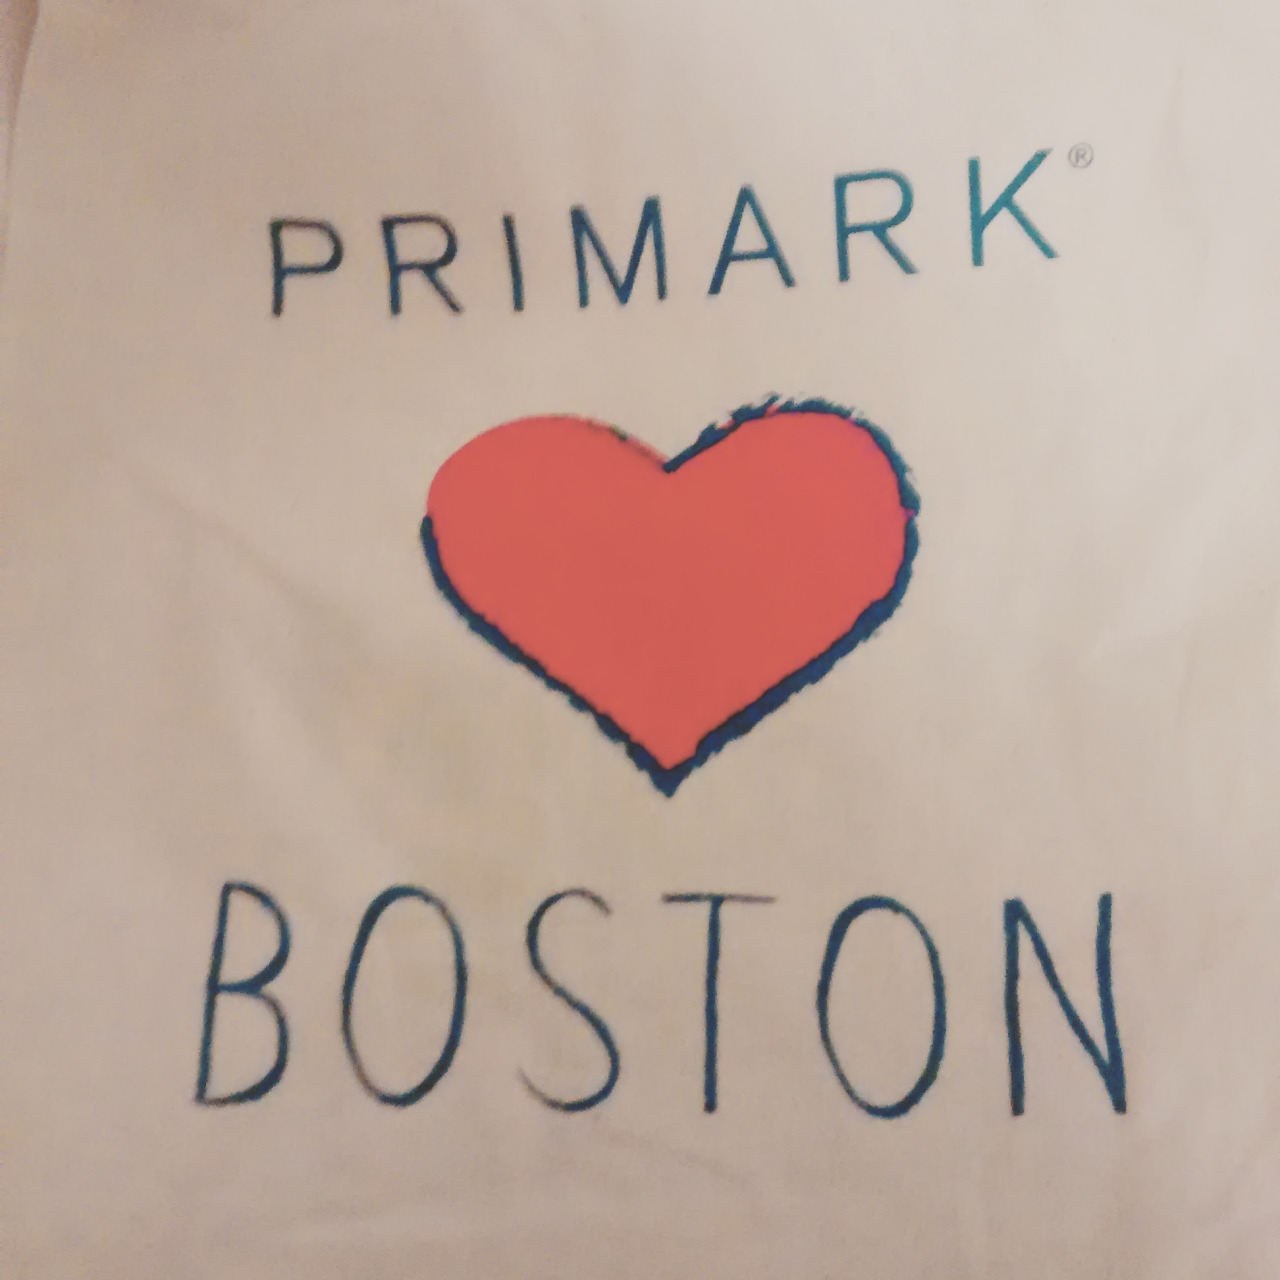 """Primark ❤ Boston  Hey lovelies! Last week, UK-based Primark made its US debut with a massive store in Boston's Downtown Crossing and I had the opportunity to attend a pre-opening party hosted by Refinery29 (featuring a performance by Tinashe!) for fashion bloggers and influencers. I had been very excited for the store since I've heard so much about the British high street brand but I didn't grasp how amazing the cheap chic brand was until I finally walked through its doors.    Oh HEY Boston!  #PrimarkUSA   pic.twitter.com/Oc6RWyvP3f   — Primark (@Primark)  September 9, 2015   Primark is a fast fashion brand much like Zara and H&M but with incredibly cheap prices that don't sacrifice quality.  According to analysts at Bernstein Research, Primark's prices are """"about 20 per cent below Forever 21, 33 per cent below Old Navy and close to 40 per cent below H&M."""" Primark stocks so many cute and on-trend pieces at fantastically low prices on a daily basis. Walking through the bright, four floor store at 10 Summer Street, you can find  camel coats  for a mere $32,  Chelsea boots  for $13, and  skinny jeans  for $10.   Primark, the UK's cheapest fast fashion, finally arrives stateside:  http://t.co/FJvAxyjZ1o   pic.twitter.com/jIDVI83buA   — Racked (@Racked)  September 14, 2015   The brand isn't very well known in the US but with Primark planning to open many more stores throughout the US, it will definitely soon be a household name. Along with the large womens department they also have mens, kids, beauty, and housewares items. Refinery29′s party was really exciting but it will probably have been the easiest time I will ever have had to shop at the store. Be prepared for long lines at the tills and fitting rooms as well as your size to be out of stock - but they restock daily so keep checking if you really love an item!   . @Tinashe  killing it at the opening of  @Primark 's U.S. store in Boston!  #Primania   #PrimarkUSA  (R29xPrimark)  pic.twitter.com/LGLPUXlWOC   — refinery"""